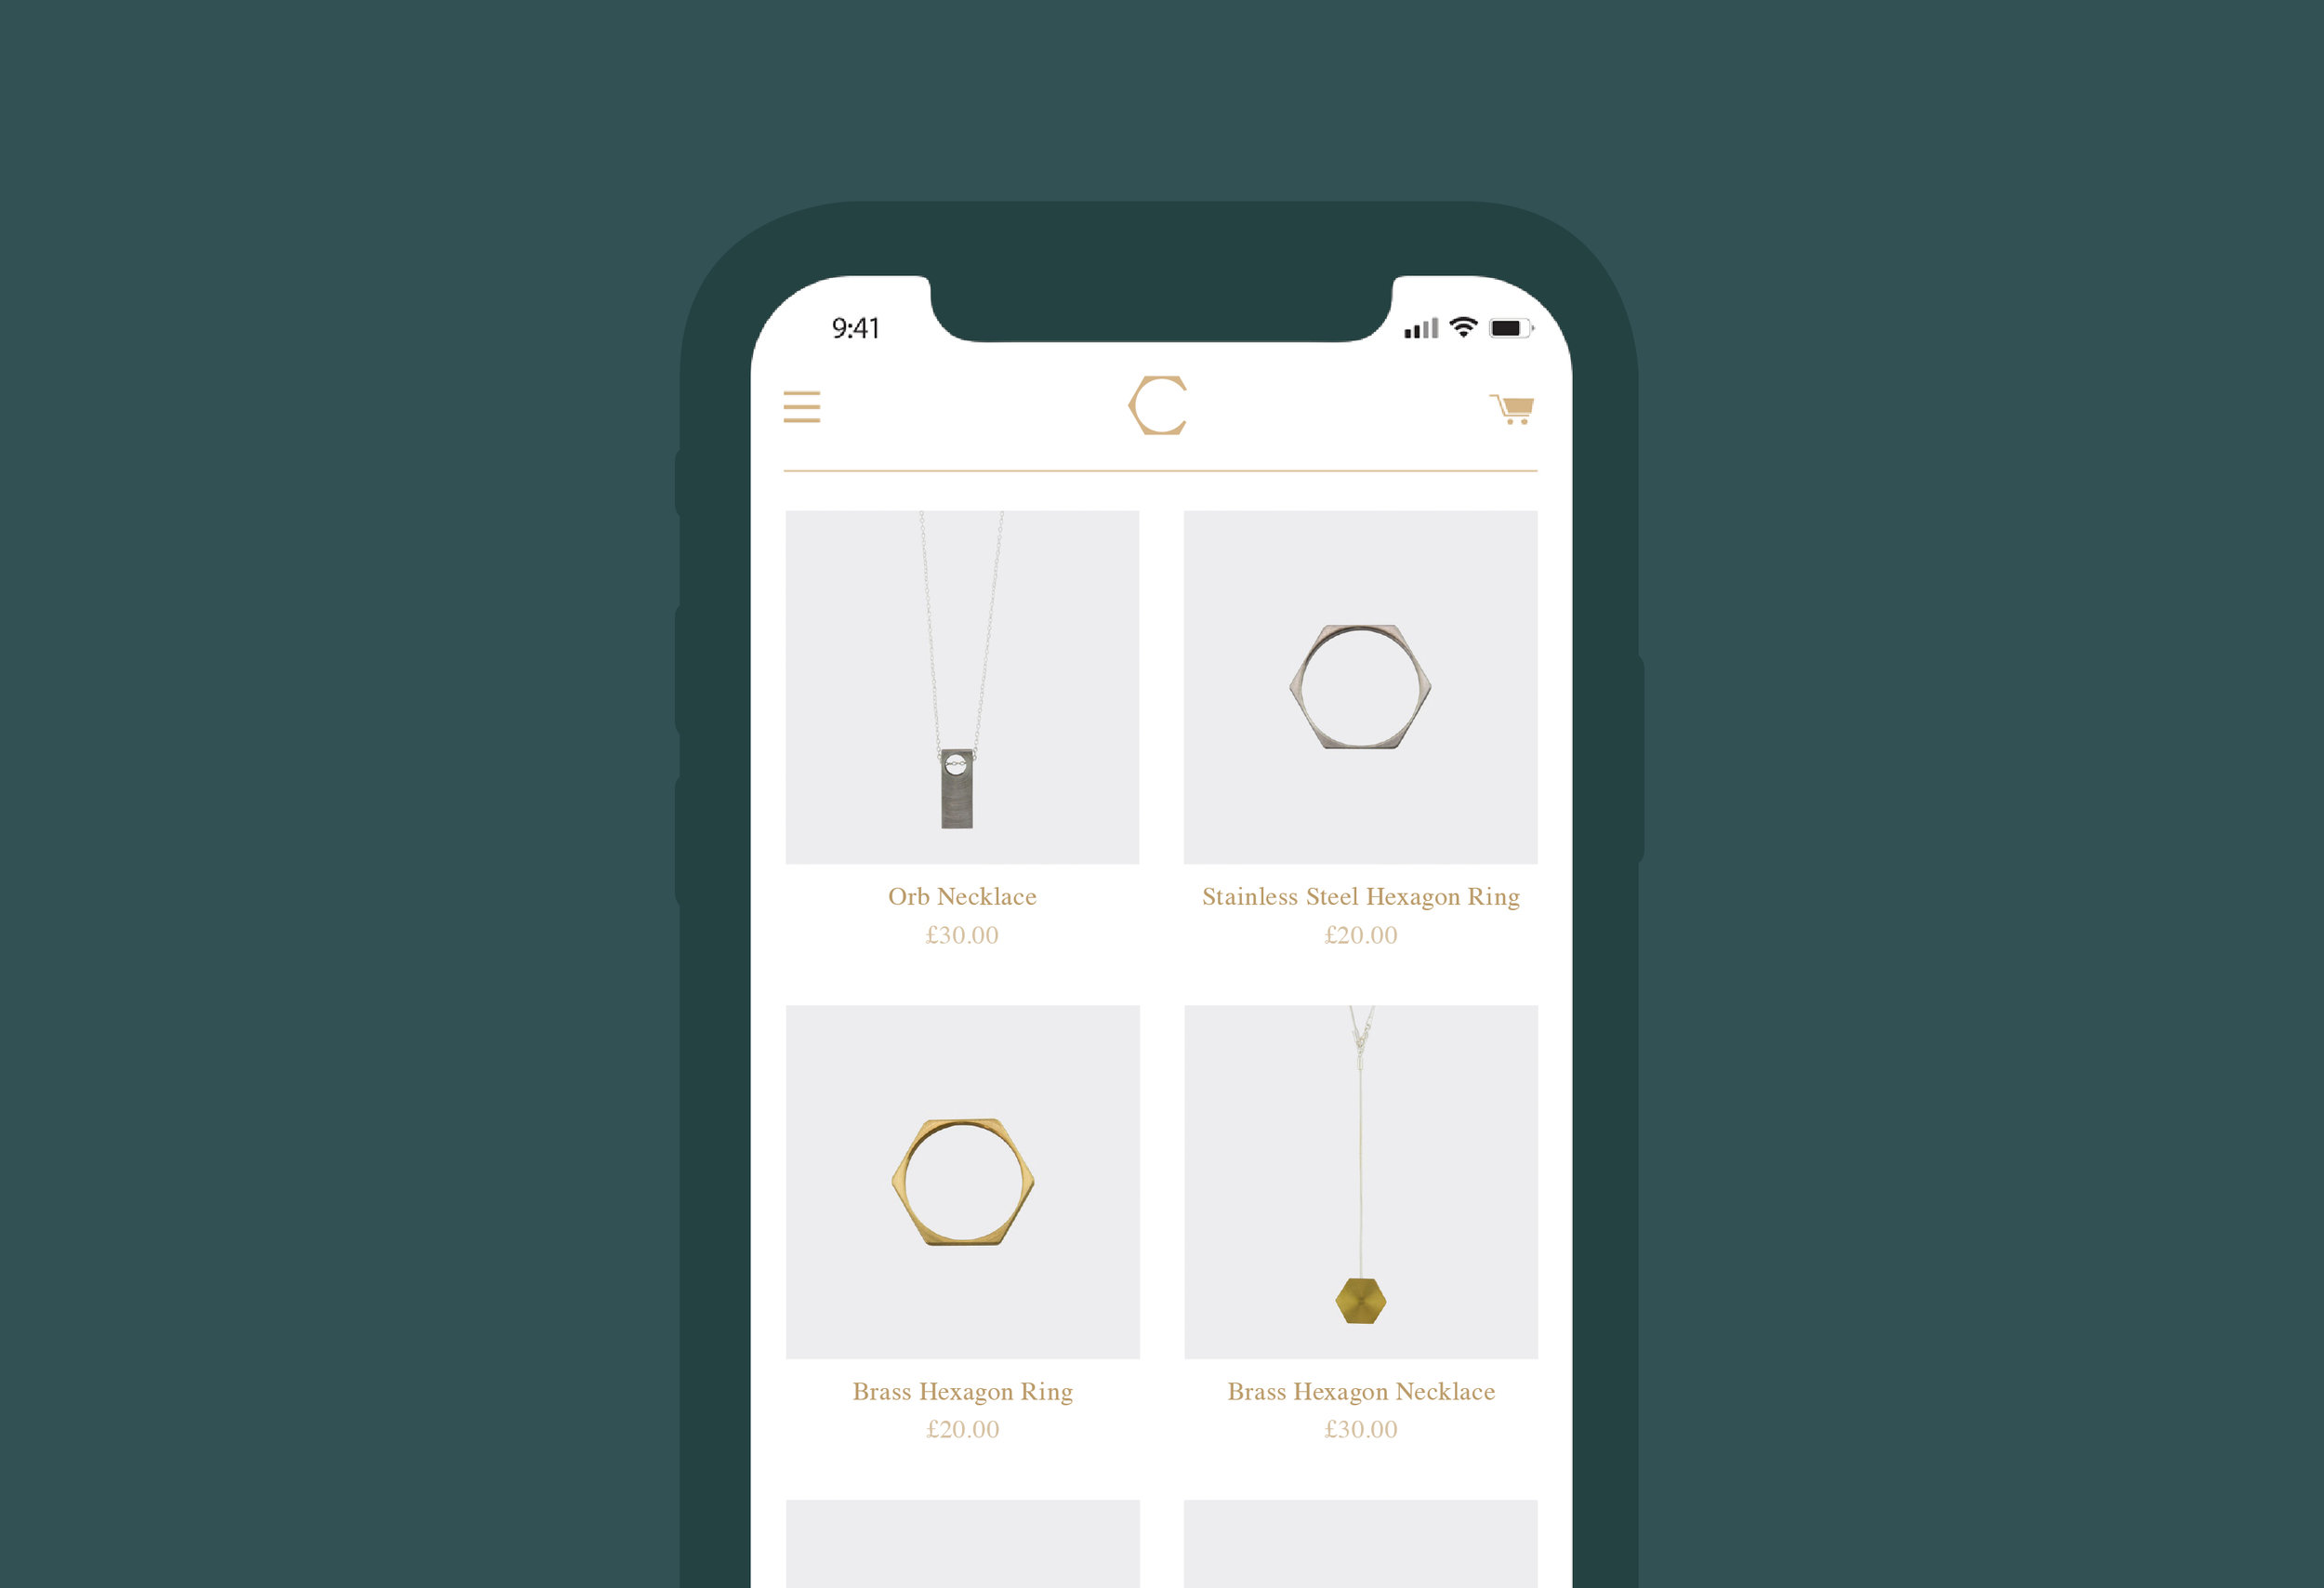 Chord_Jewellery_identity_design_Alan_Clarke-Symonds_graphic_design_mobile_website_product page_alt.jpg